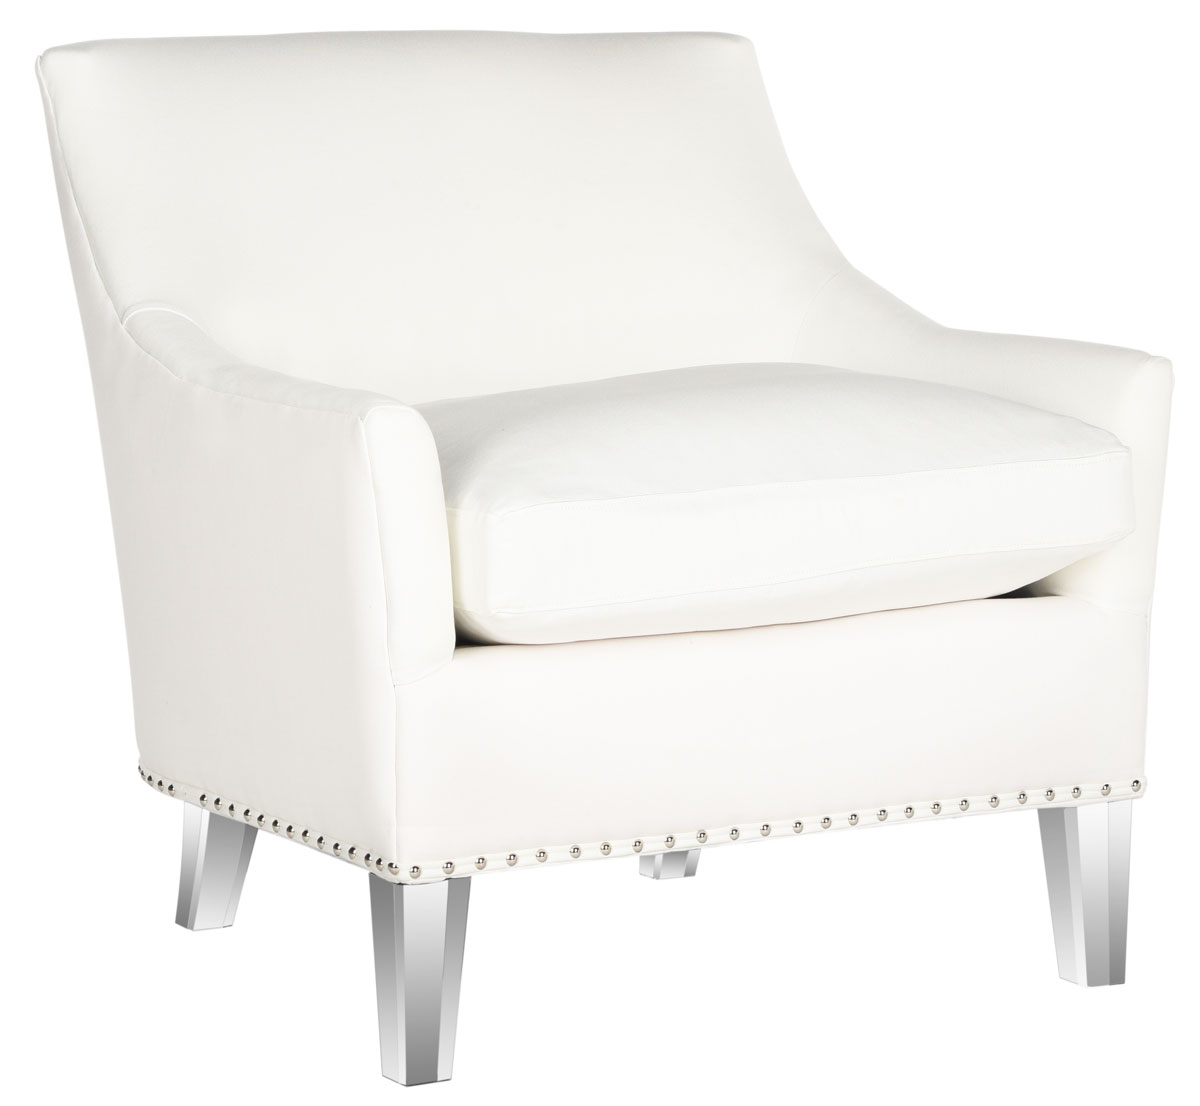 Hollywood Glam Tufted Acrylic White Club Chair W Silver Nail Heads Mcr4214a Accent Chairs